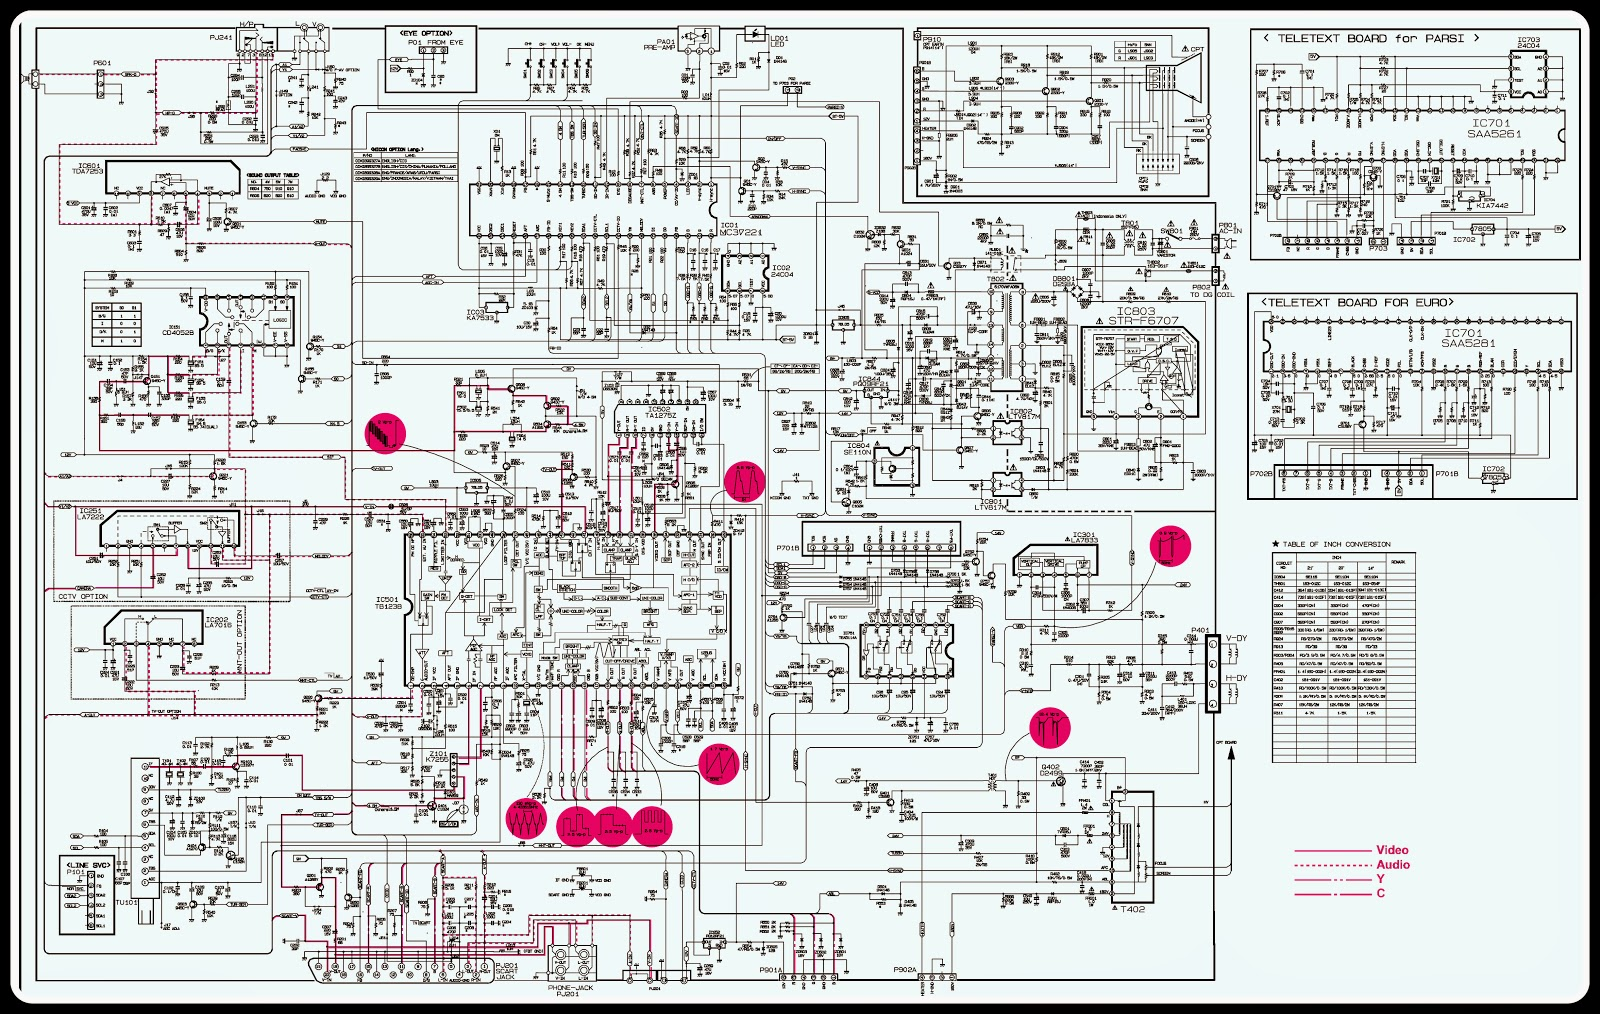 panasonic tv hookup diagram wiring diagram blogs charter connection diagrams tv connection diagram [ 1600 x 1014 Pixel ]